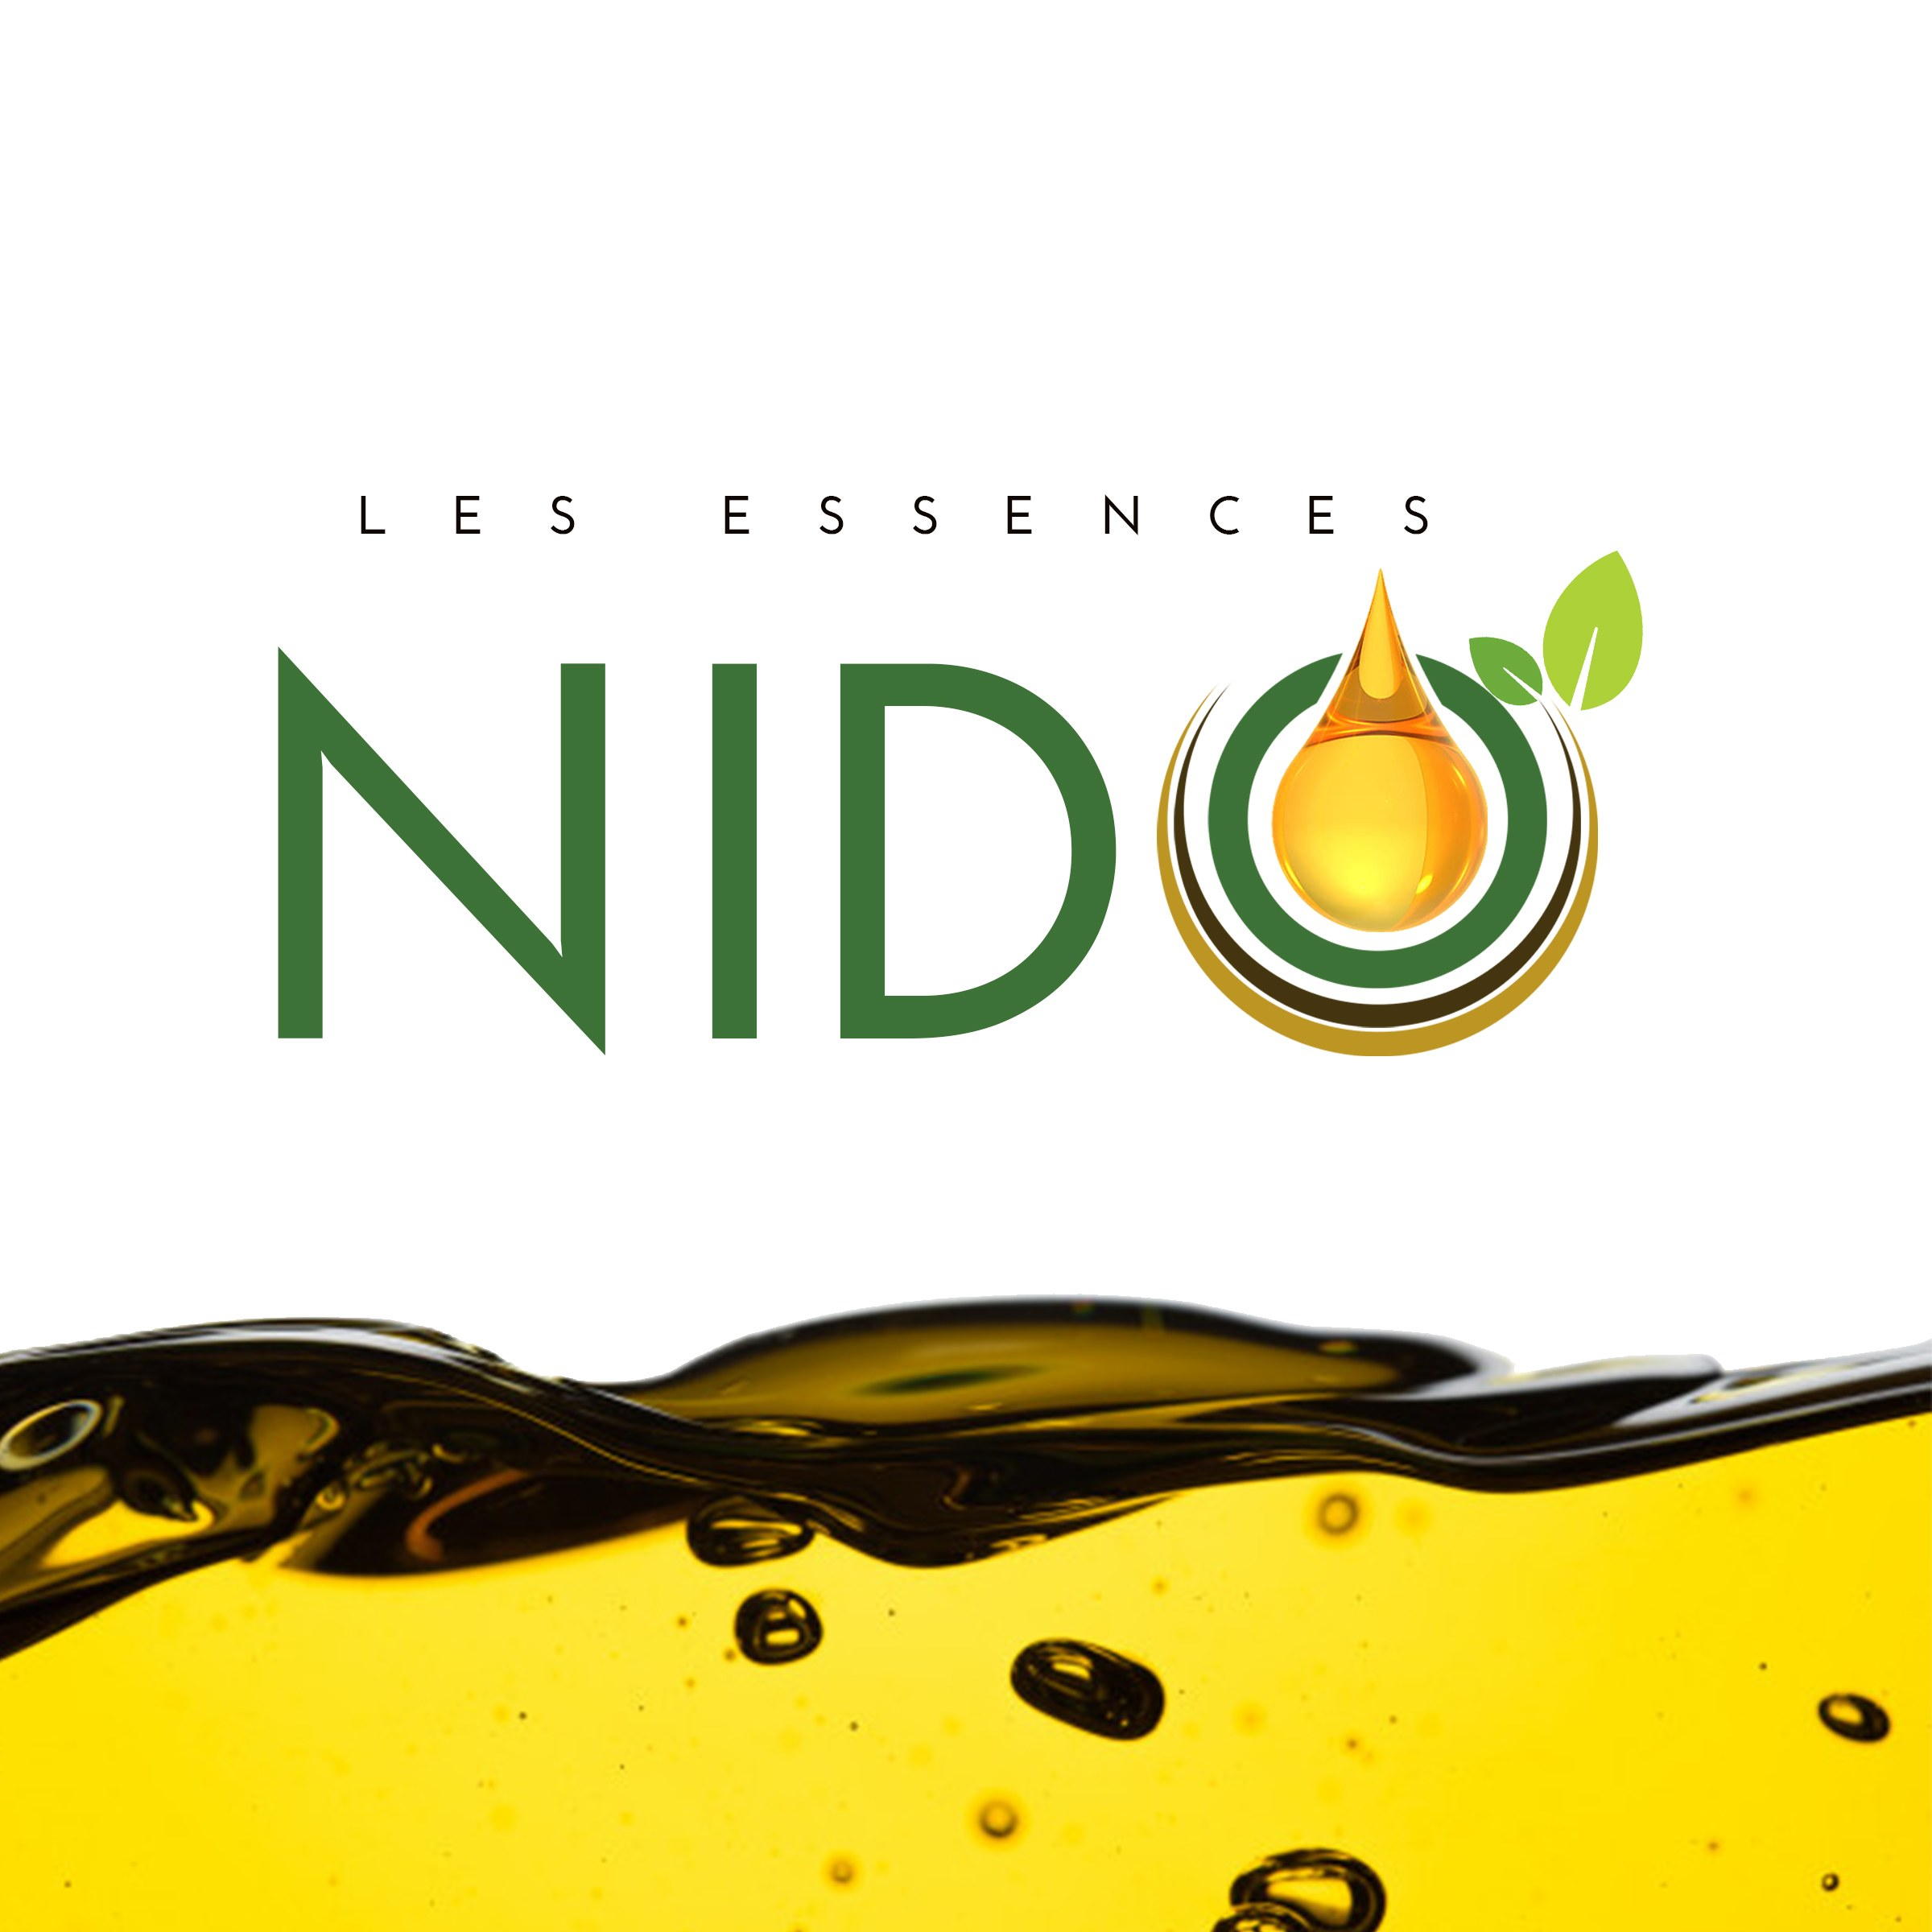 Les Essences NIDO